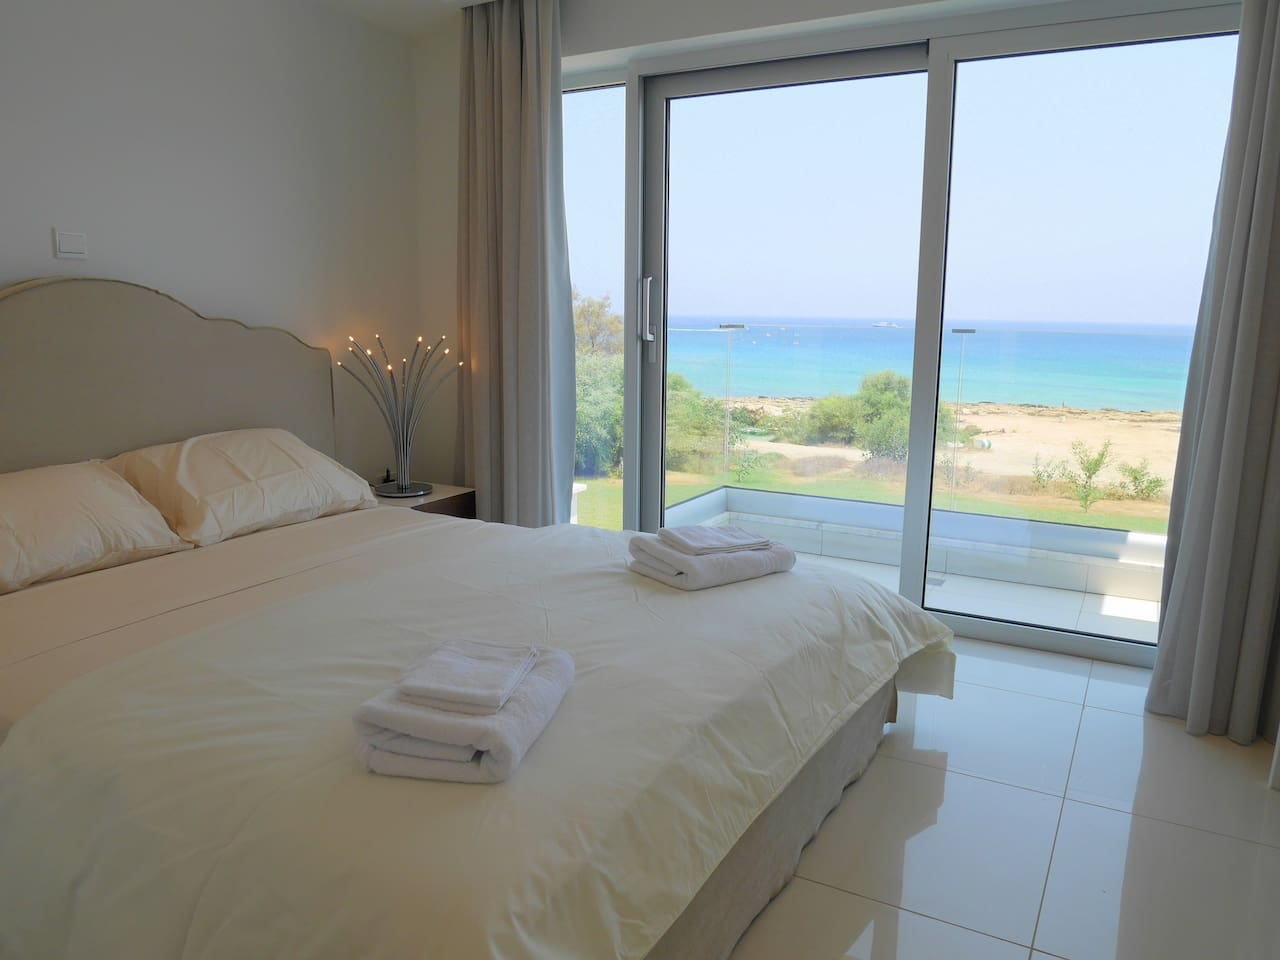 Apartment 2 Bed Luxury Apt with Large Communal Pool - B2-101 photo 19303314